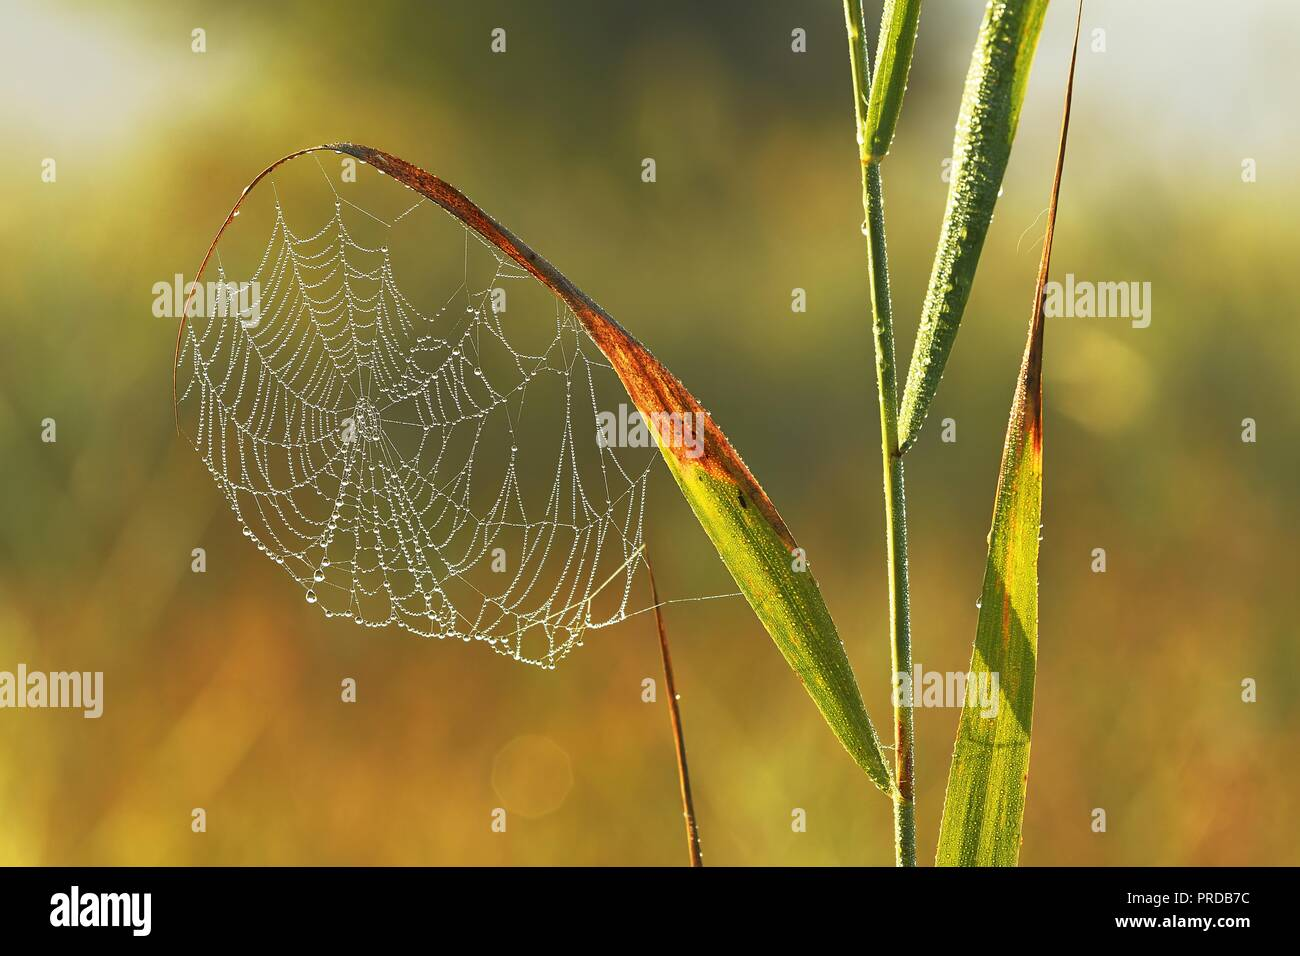 Spider's web in the morning dew, Reussspitz nature reserve, Canton Zug, Switzerland - Stock Image